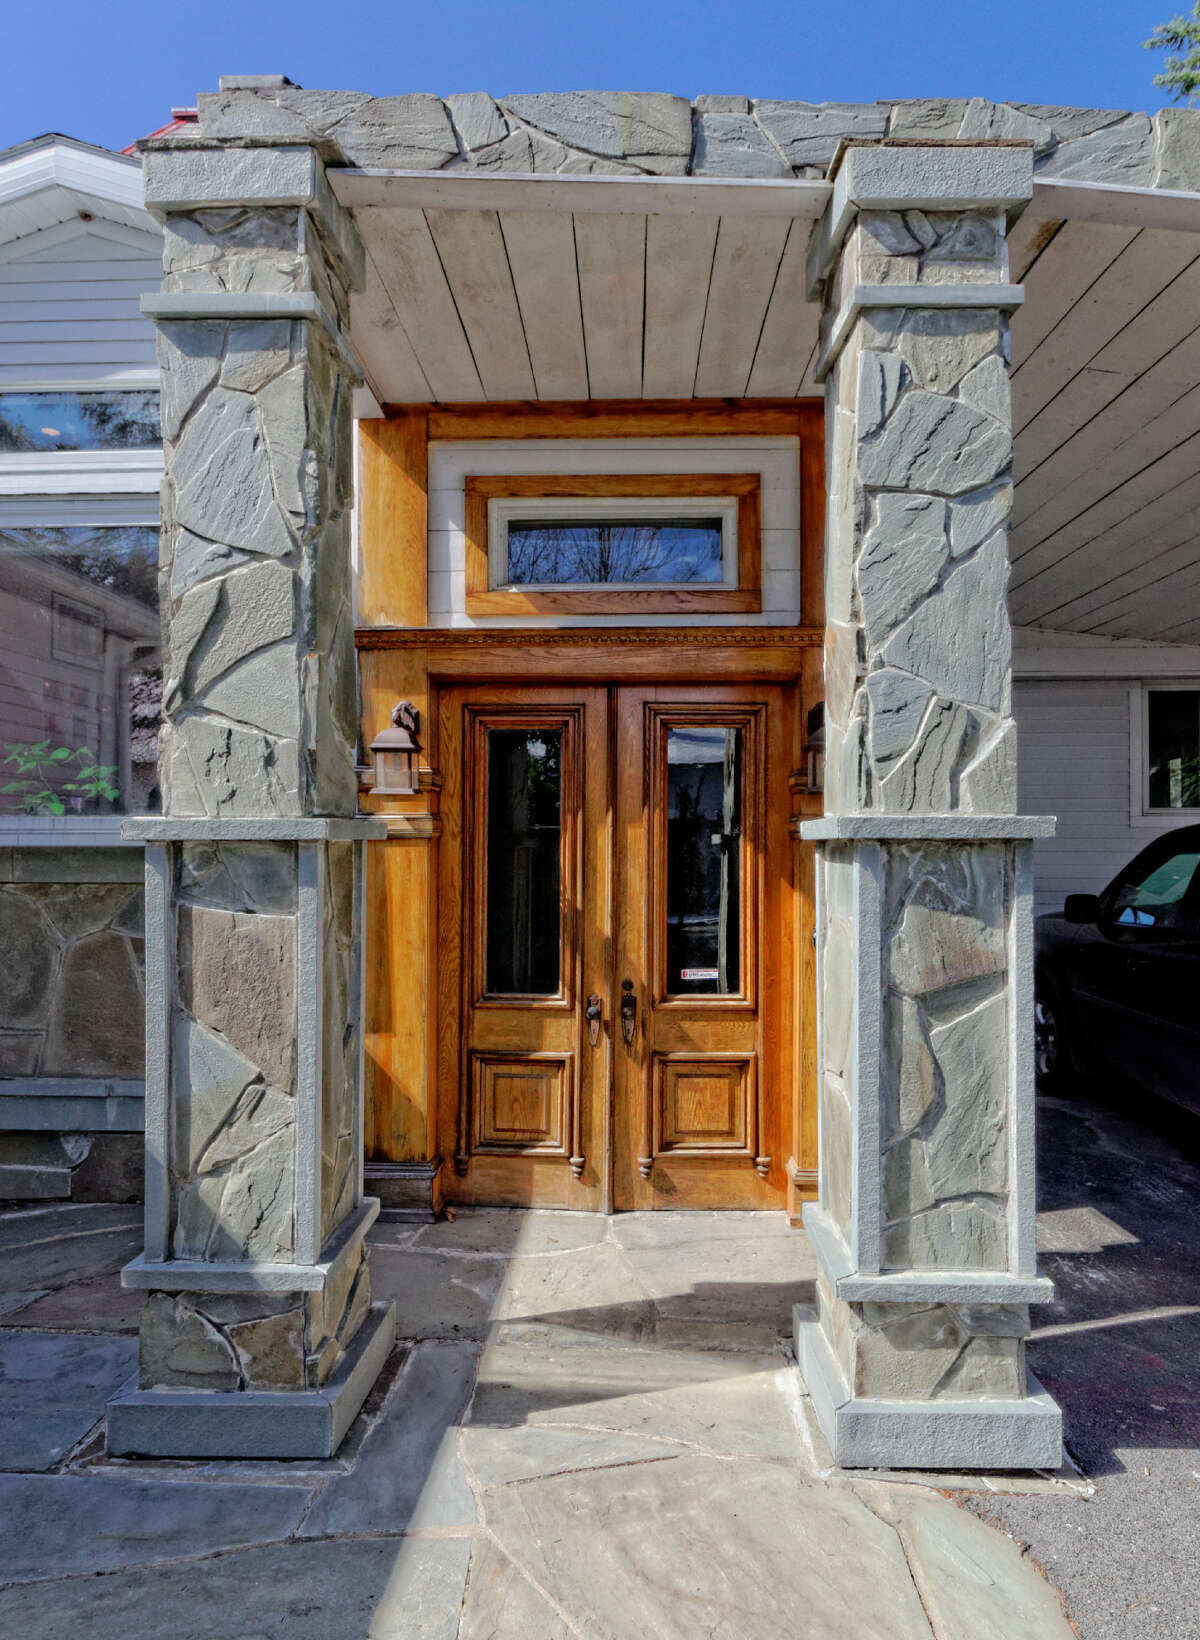 House of the Week: 118 Brunswick Rd., Brunswick   Realtor: Lisa Wloch and Kelly Stamas-Audino of RealtyUSA   Discuss: Talk about this house